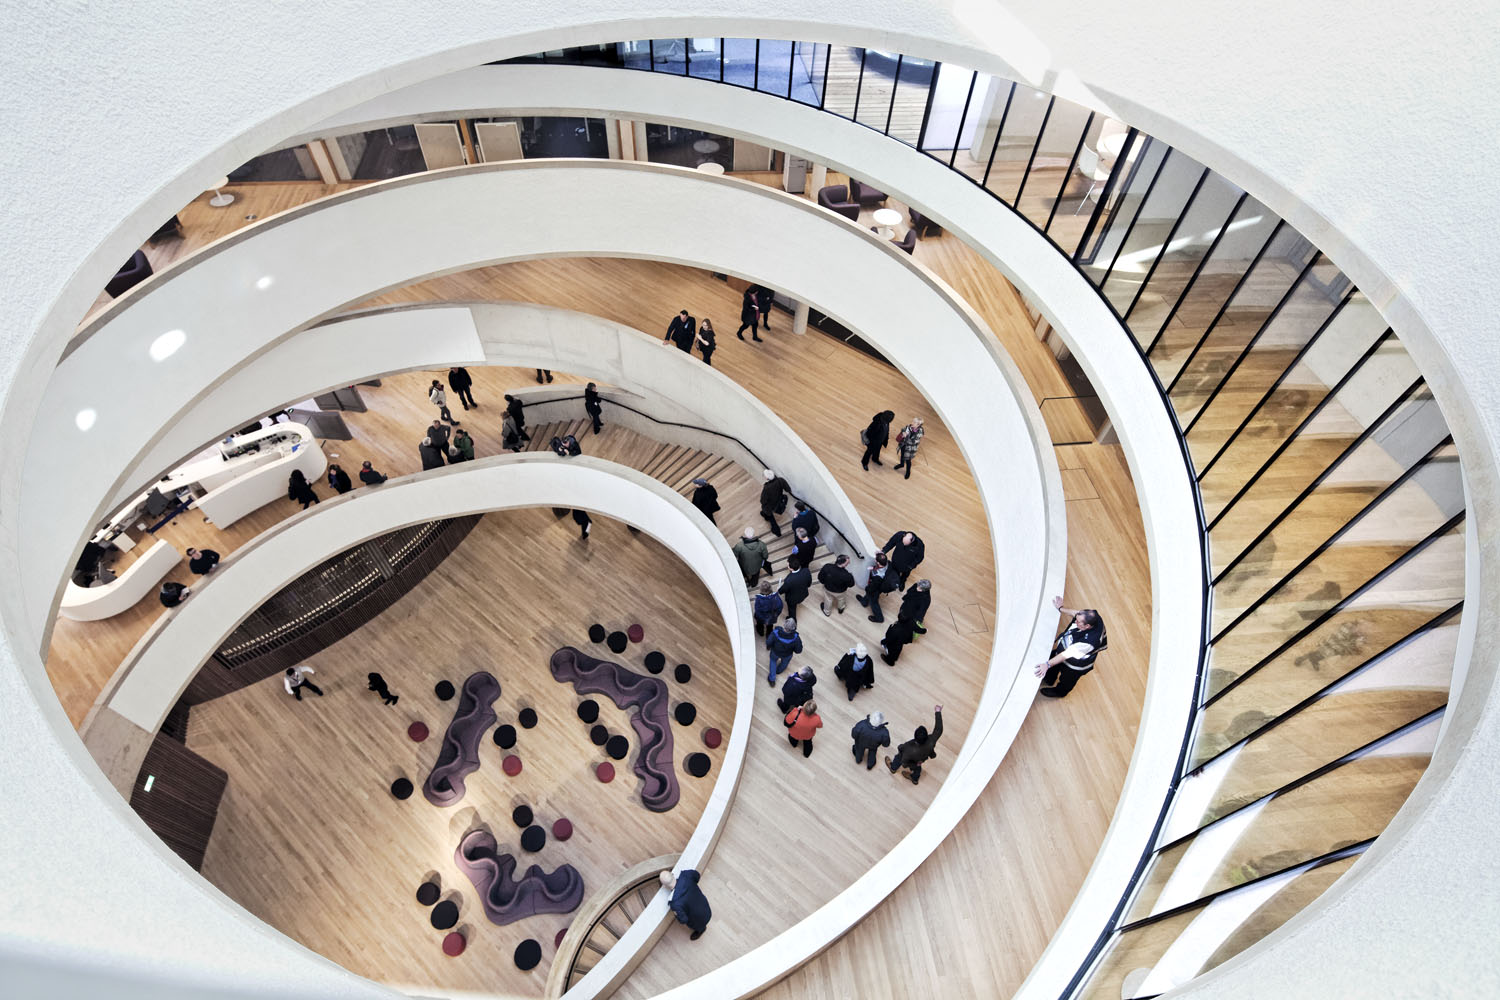 Blavatnik School of Government, Oxford University, Oxford, UK